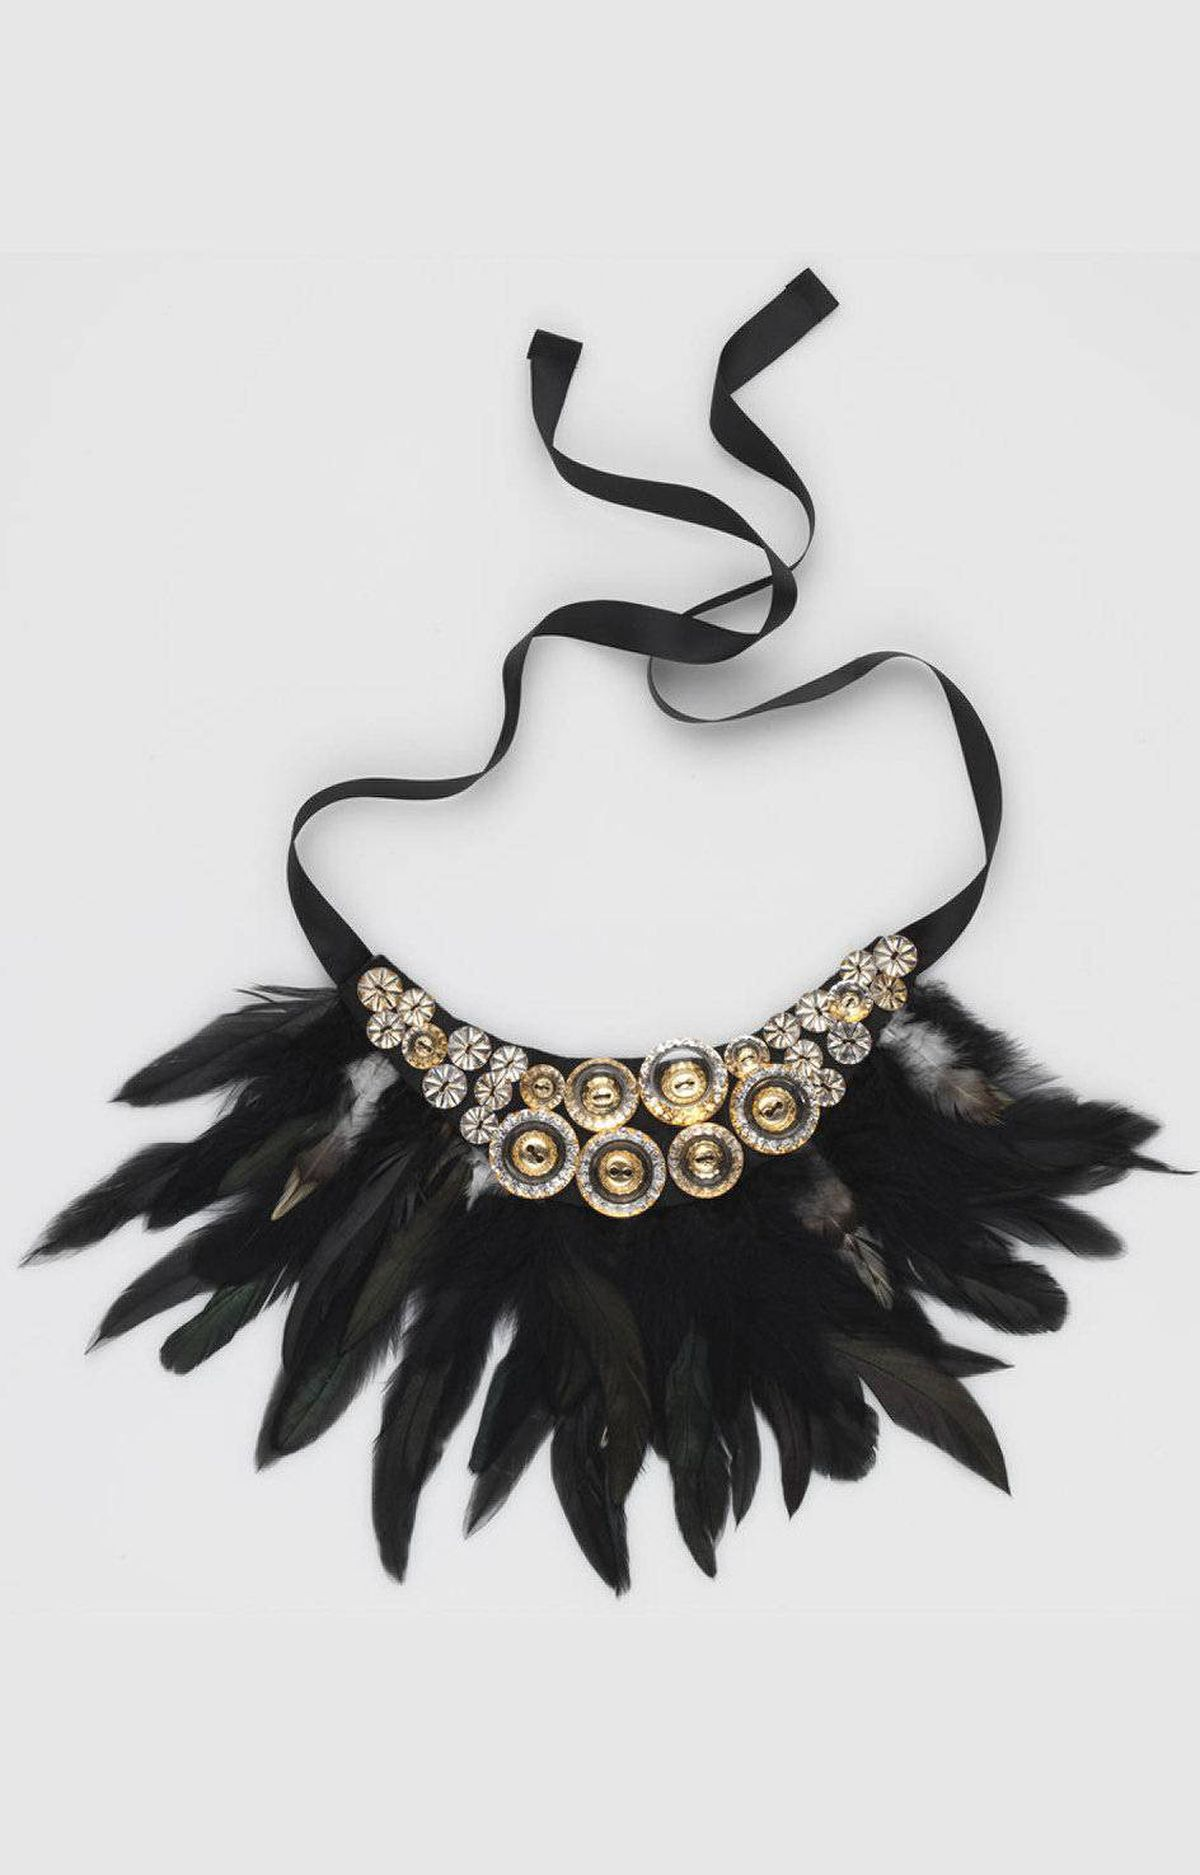 Feather necklace by Headmistress, $74 through www.loveheadmistress.com